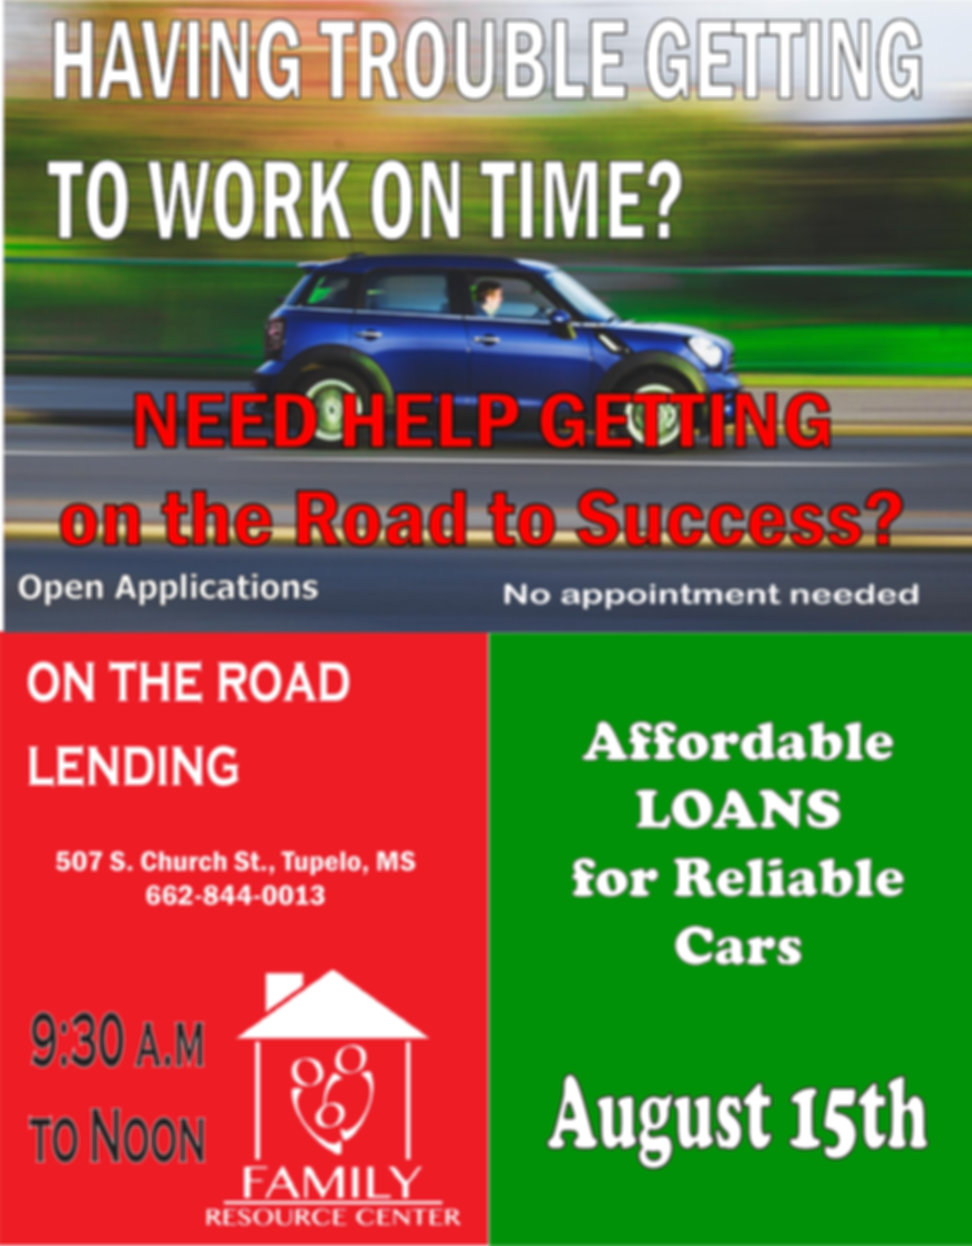 ON THE ROAD LENDING FLYER.jpg